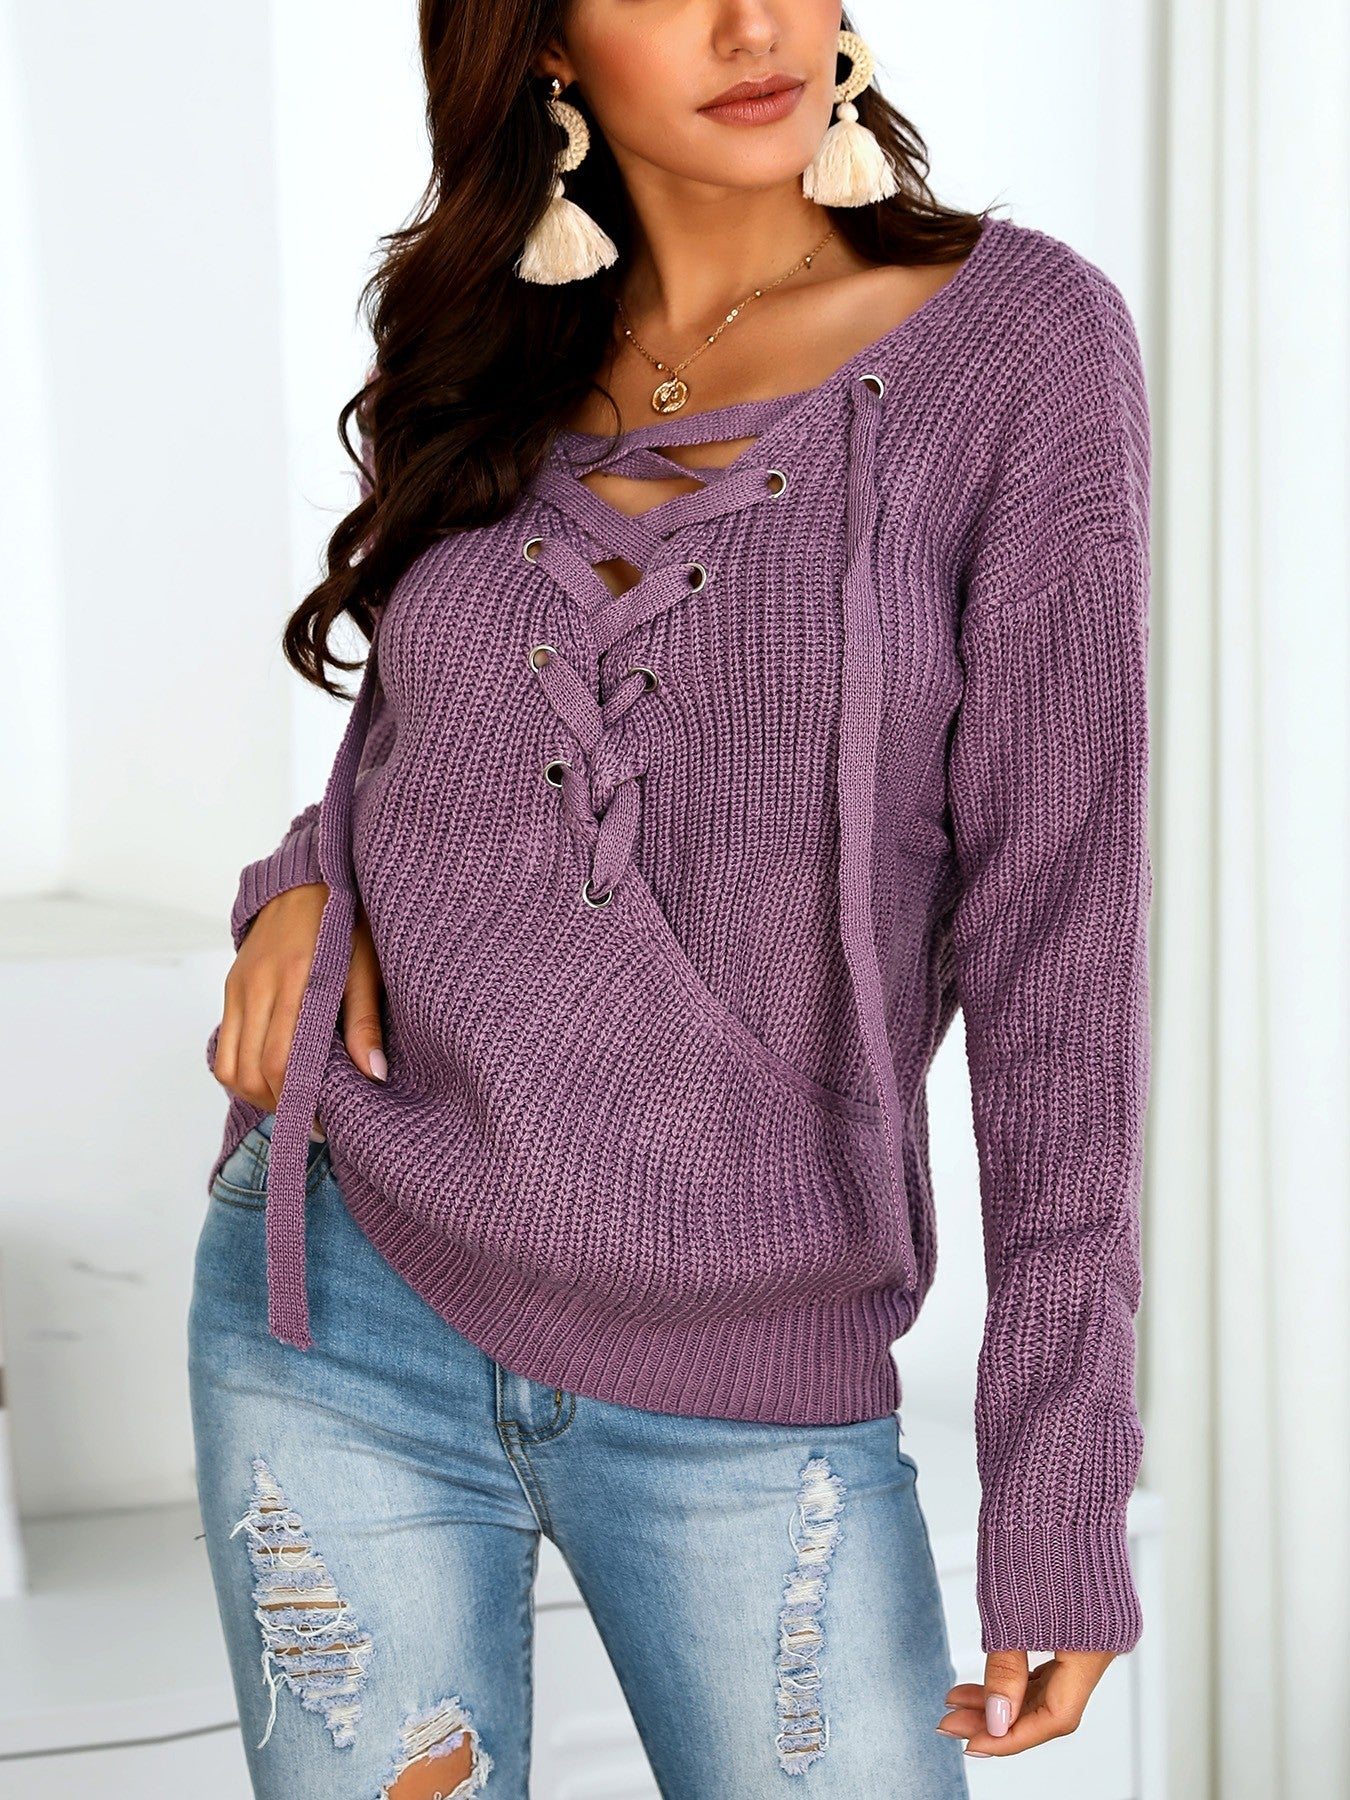 Lace-up Open Back Casual Sweaters - DadHats2ow6ix